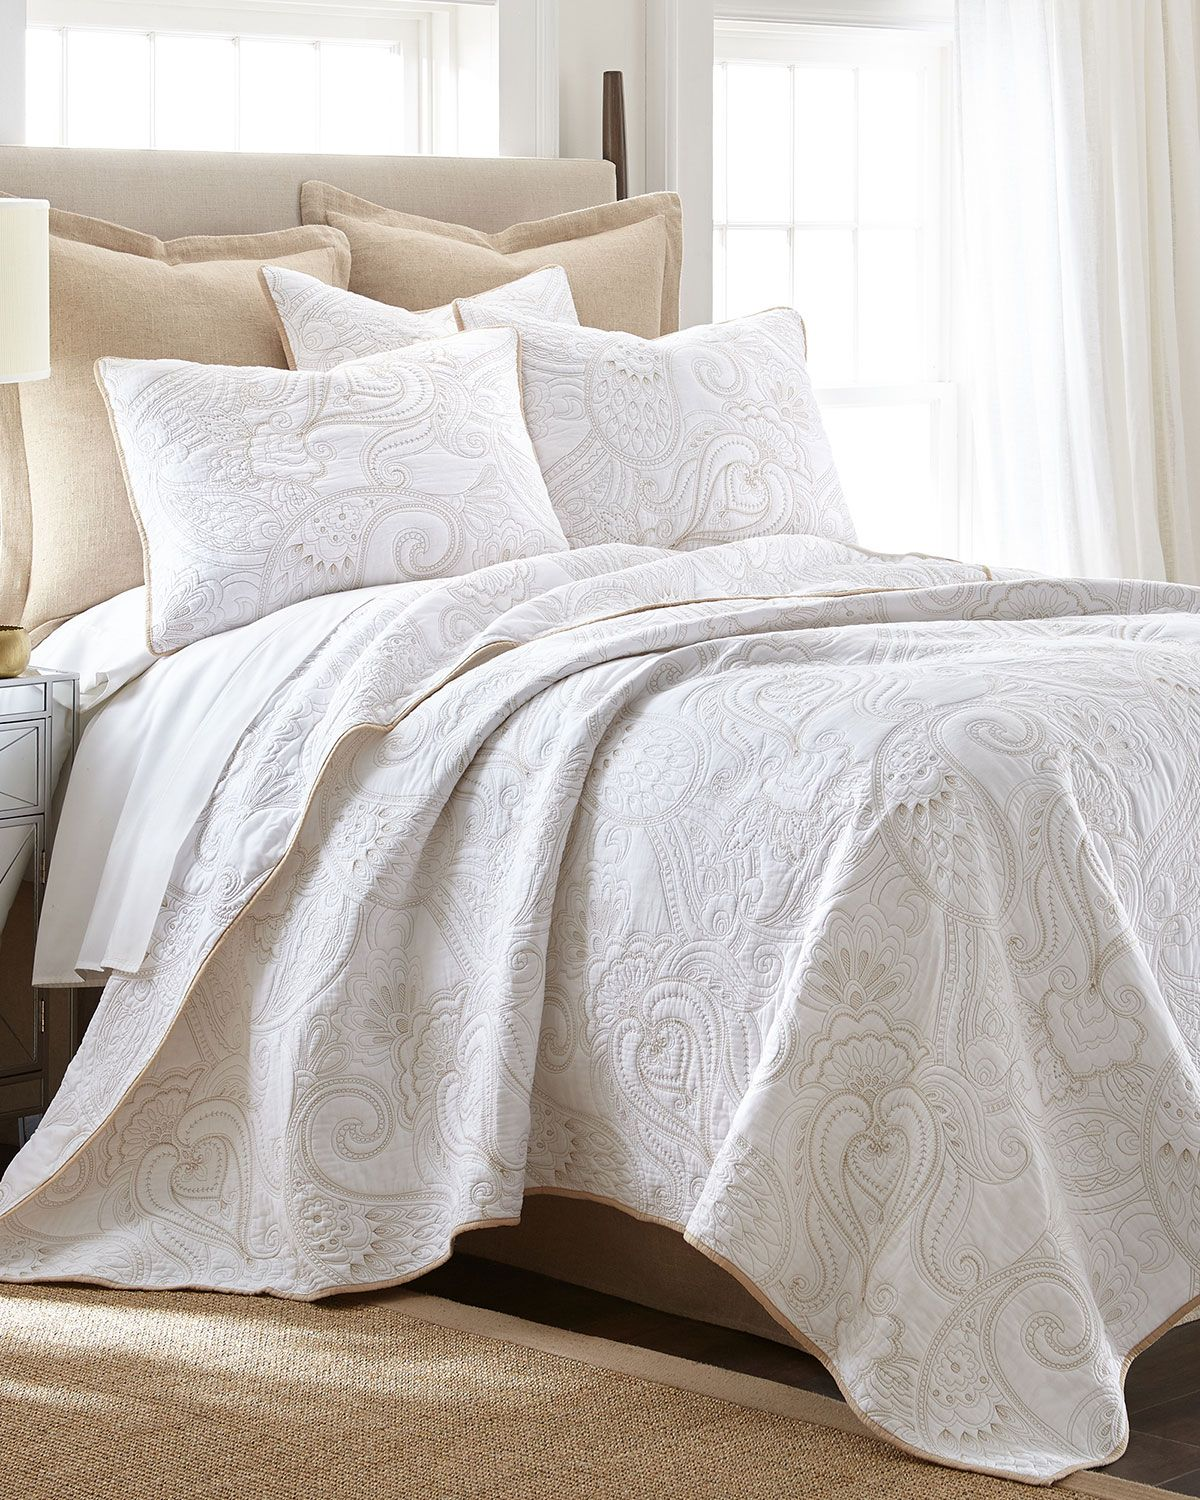 Levtex Perla White Full/Queen Quilt Set and Matching Items